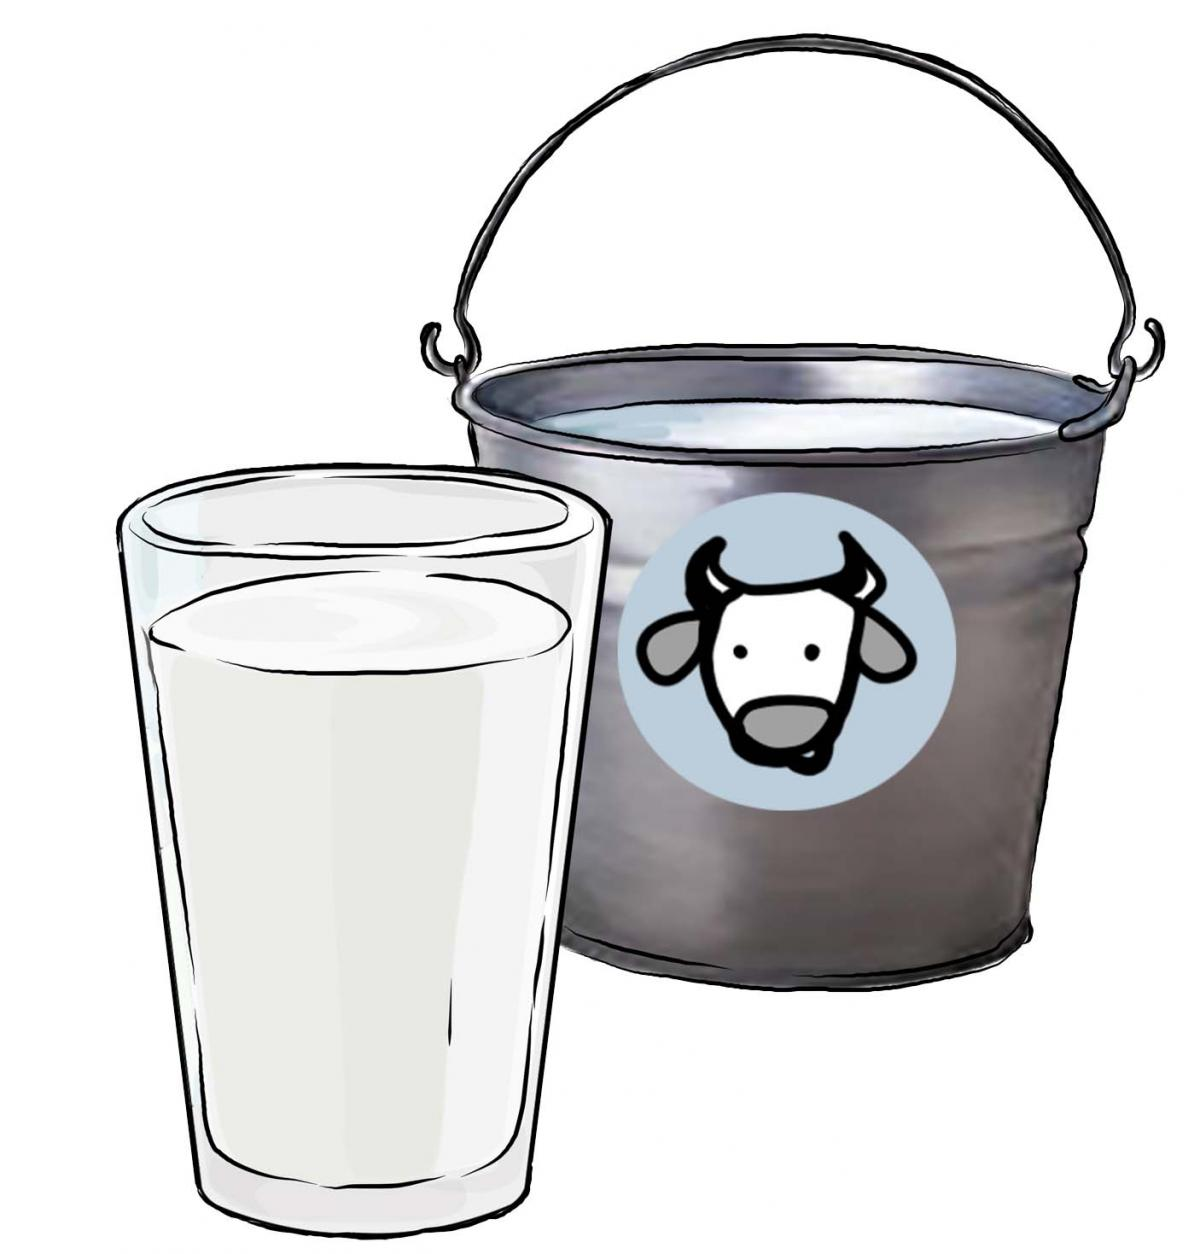 Objects - Pail of milk - 02 - Non-country specific